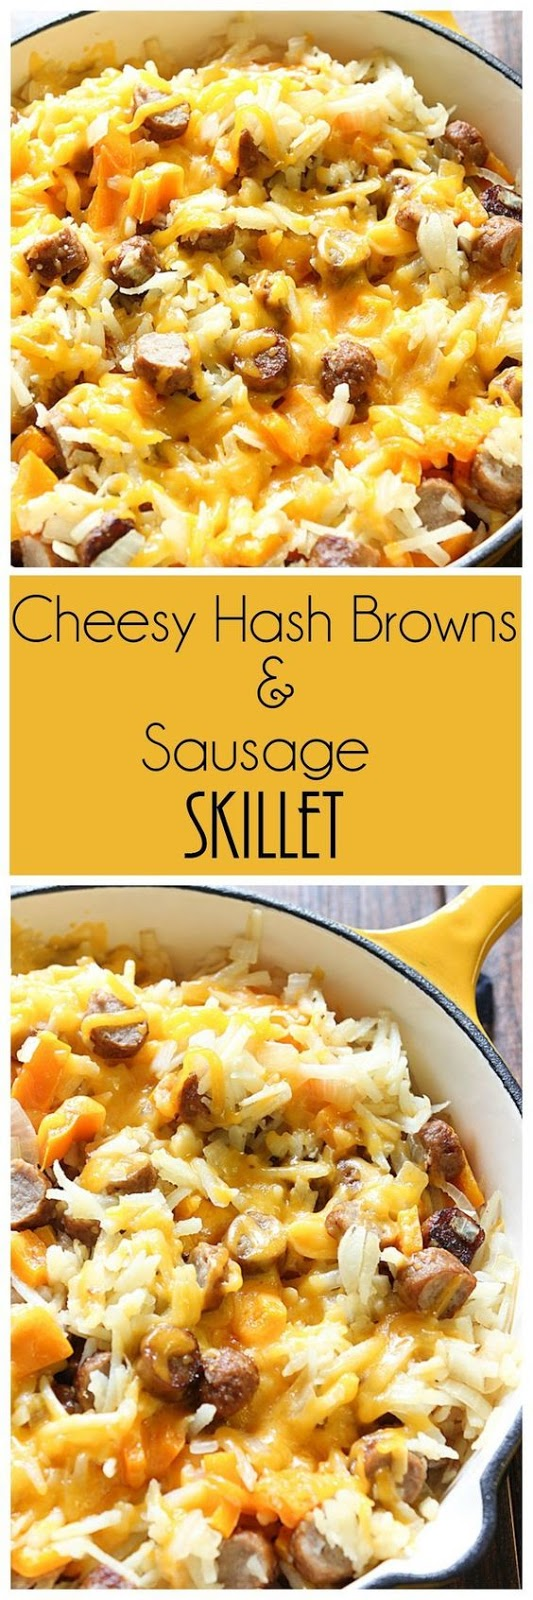 Easy Cheesy Hash Browns and Sausage Skillet